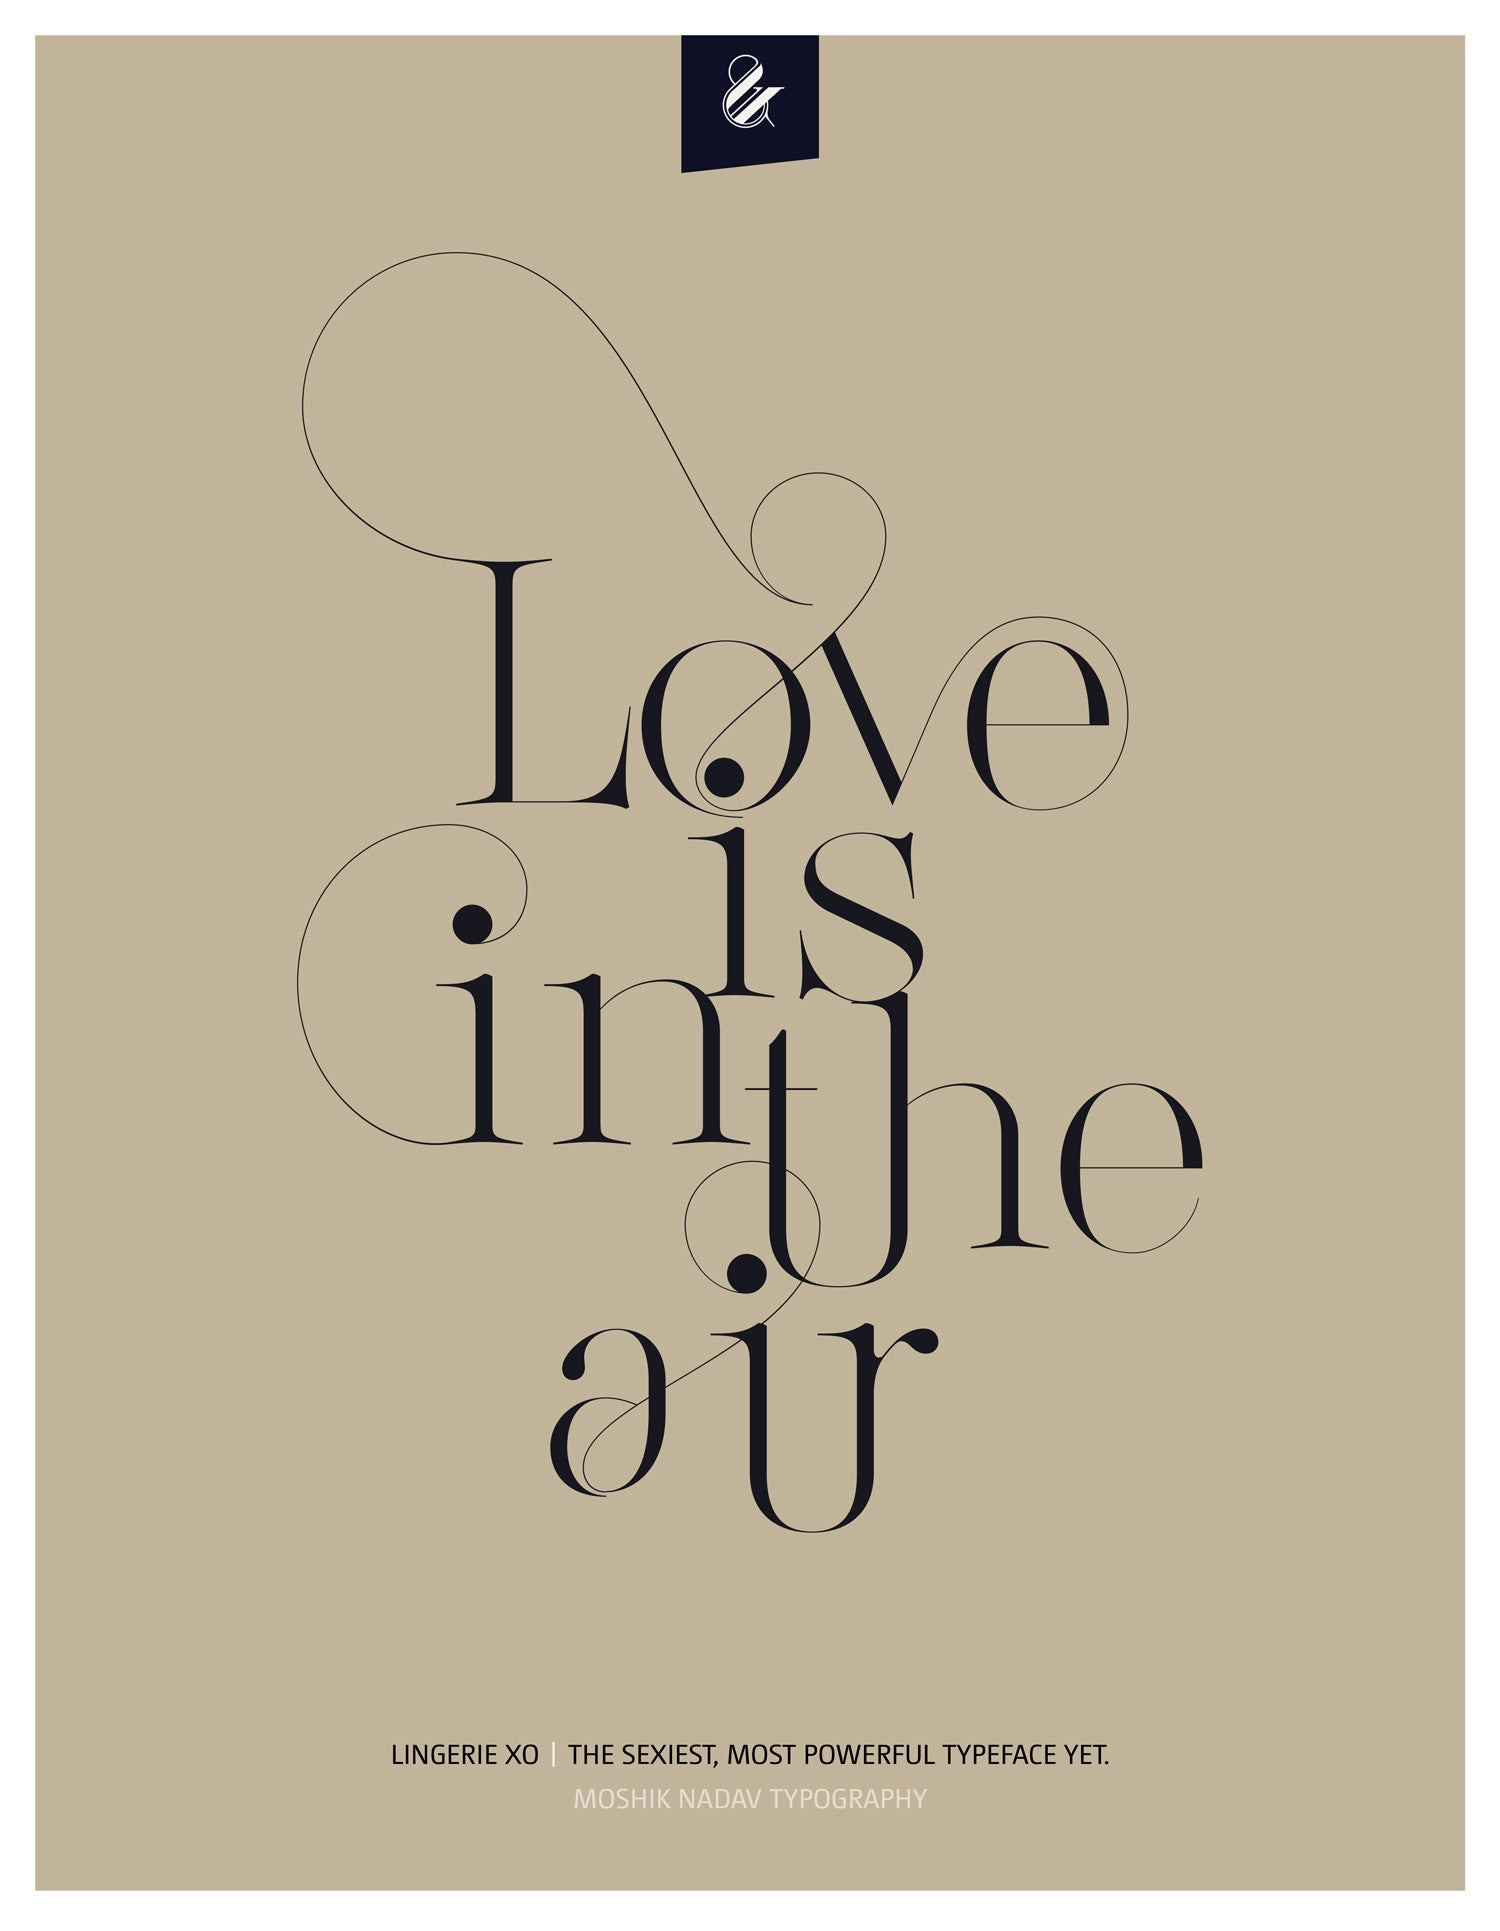 Love is in the air poster - Designed with the sexy font Lingerie XO by Moshik Nadav Fashion Typography NYC